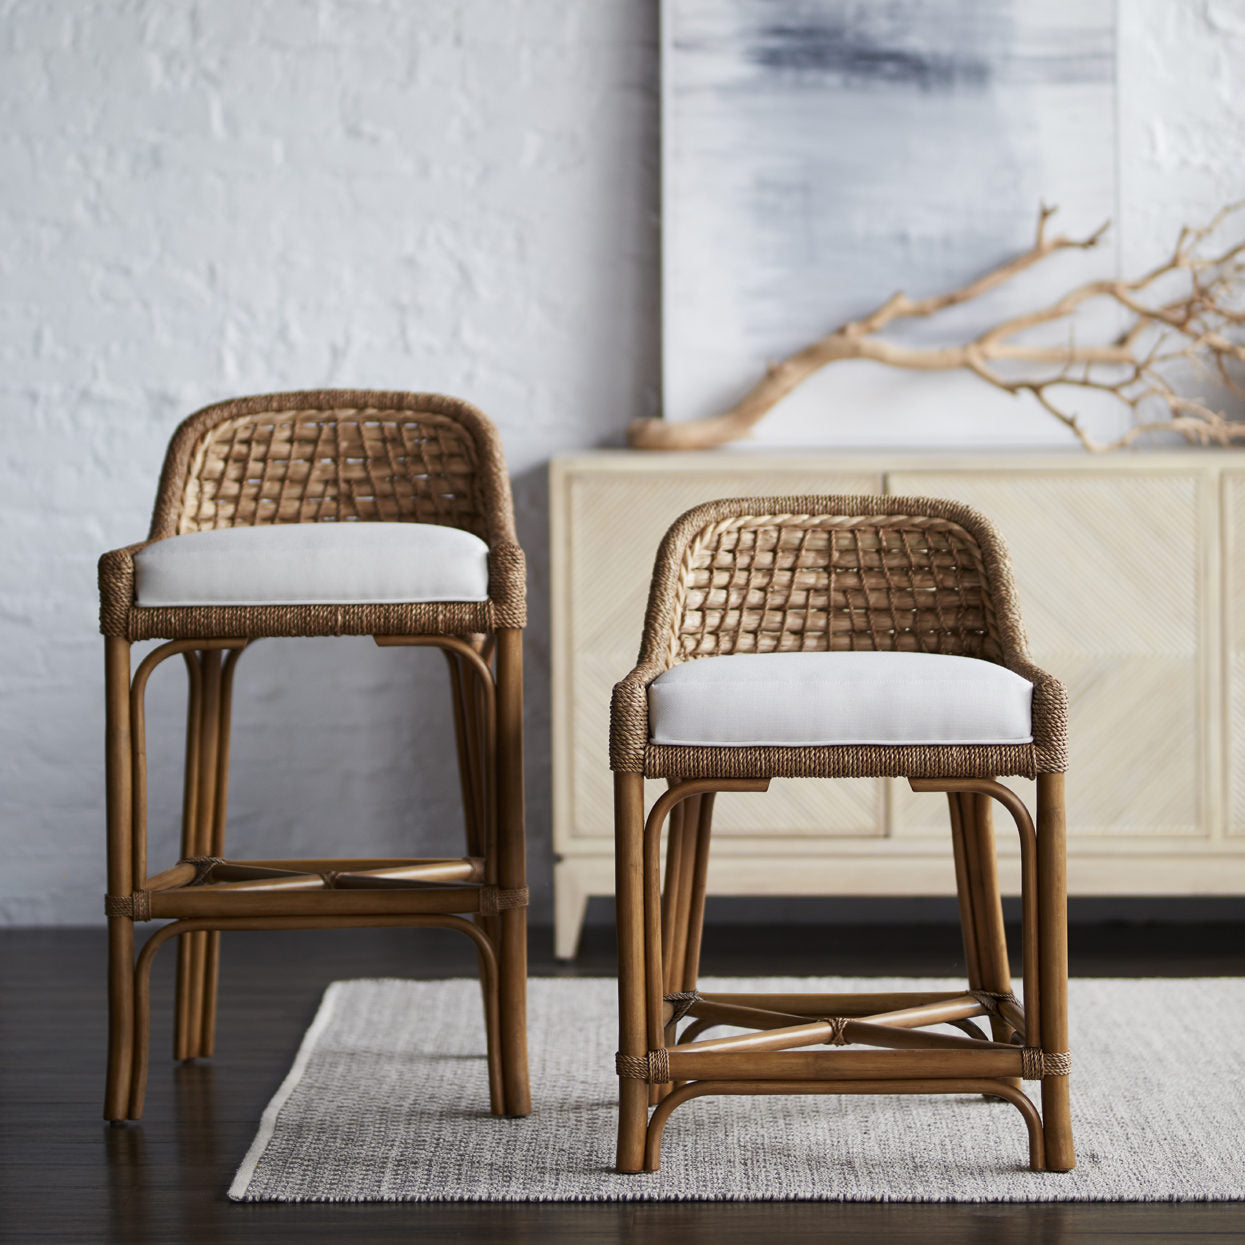 Tortuga Stool (Two Sizes)